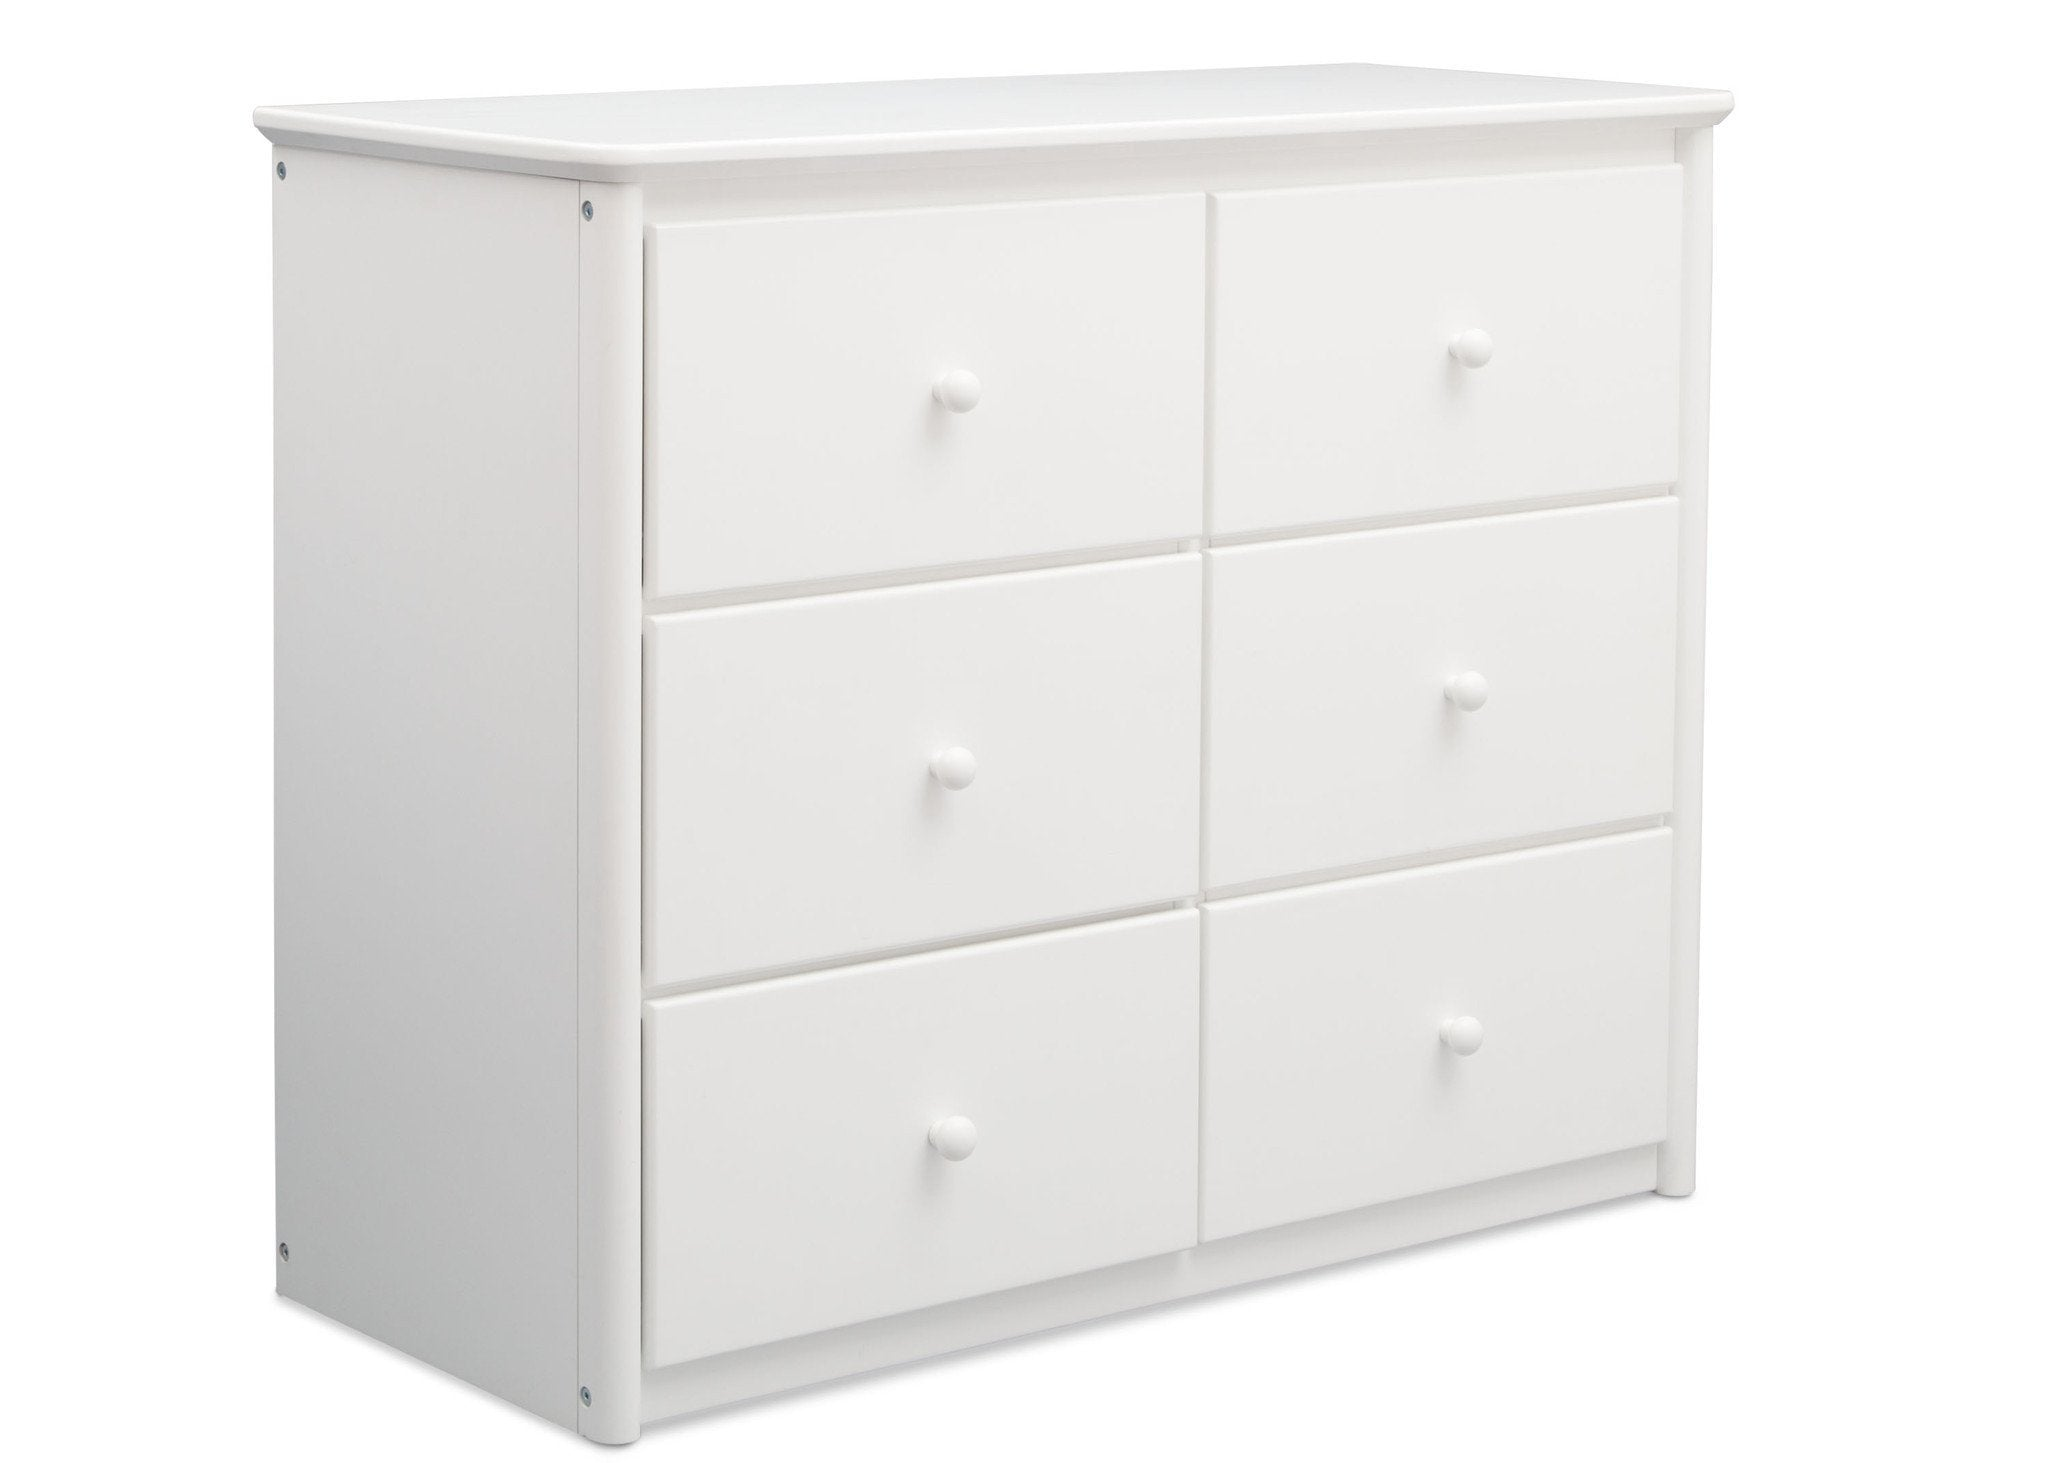 media white garden drawer free shipping overstock dresser notting today hill home product